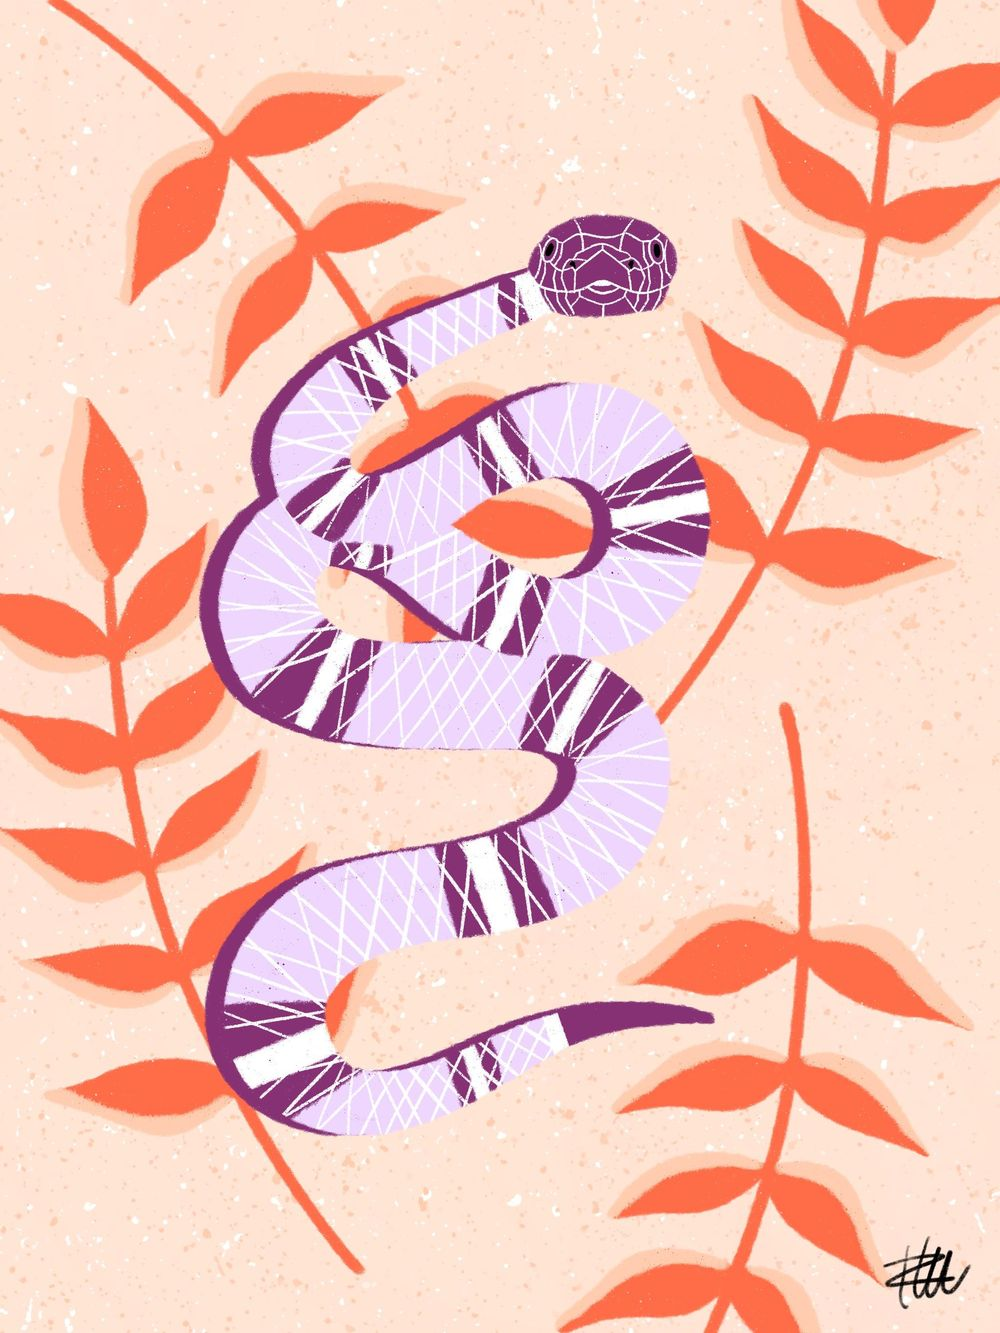 Snake - image 1 - student project